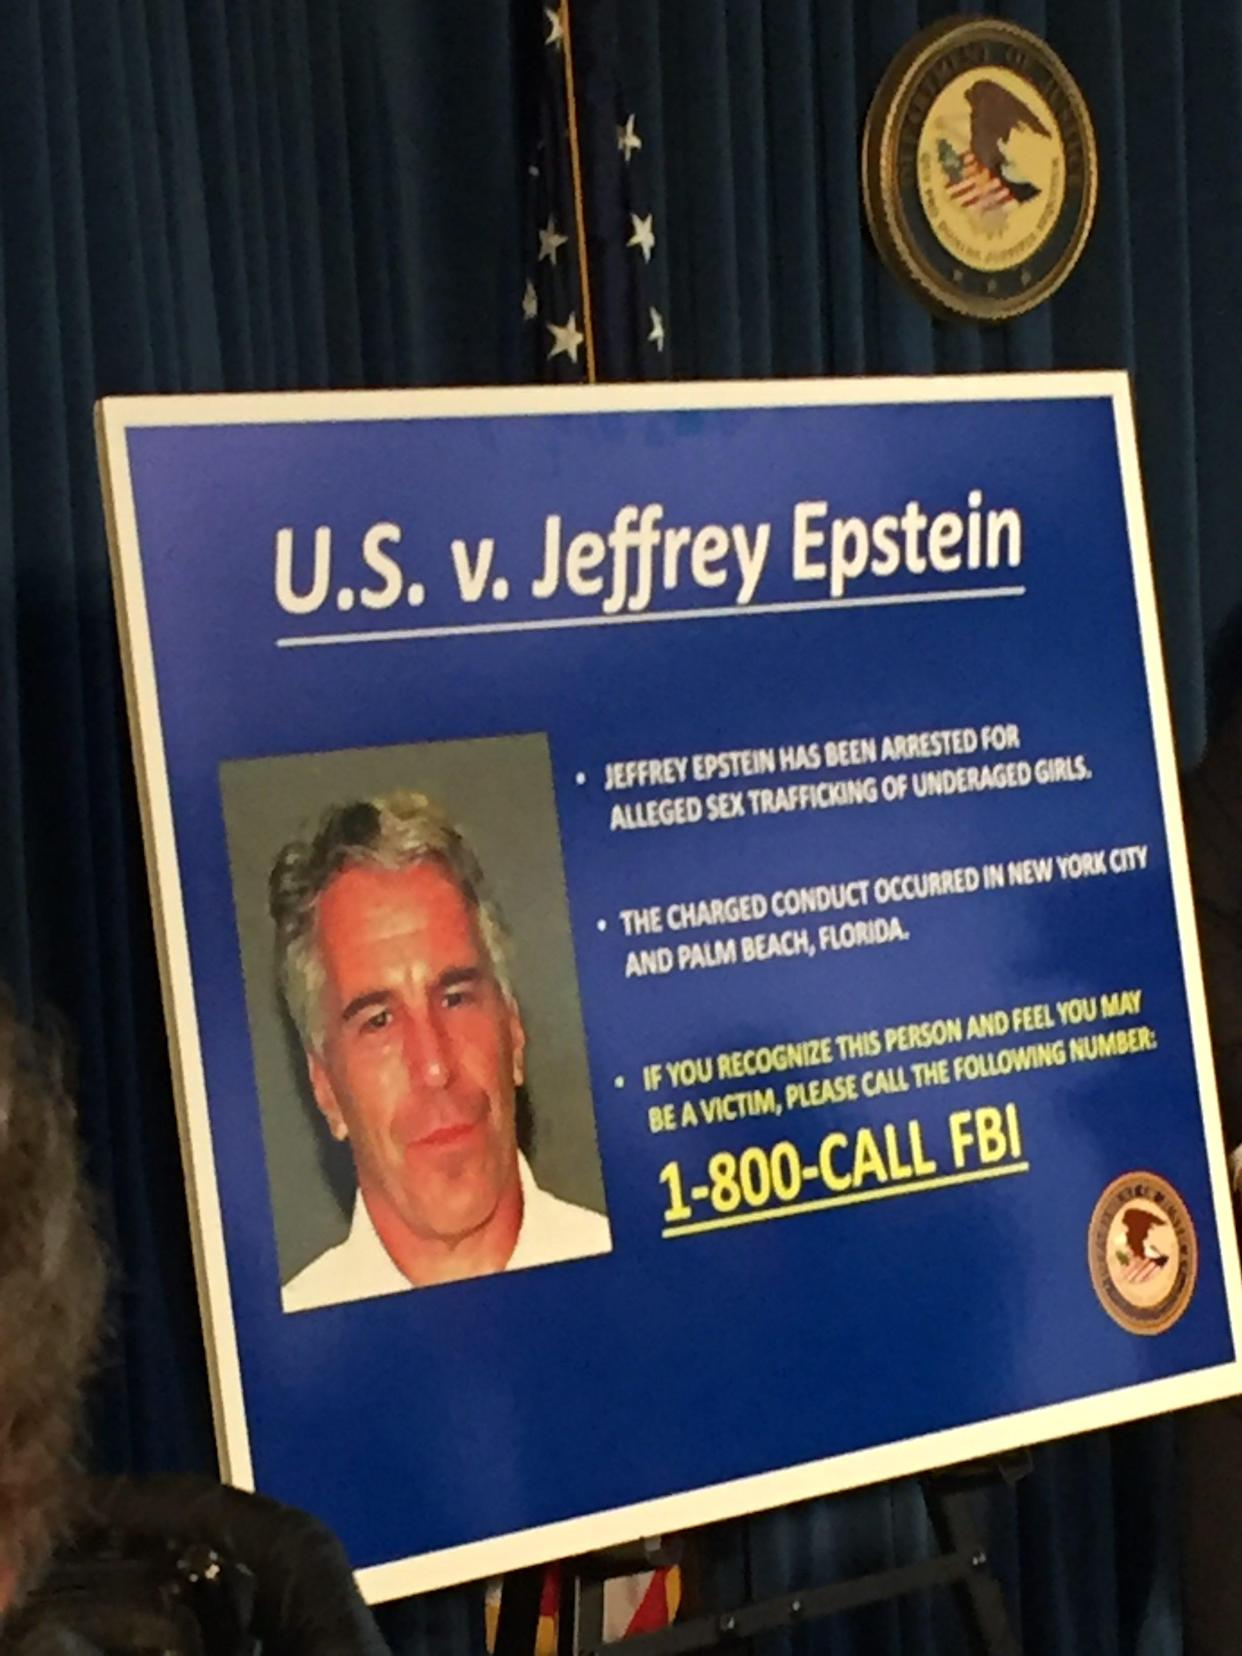 Jeffrey Epstein faces charges of sex trafficking and conspiracy.